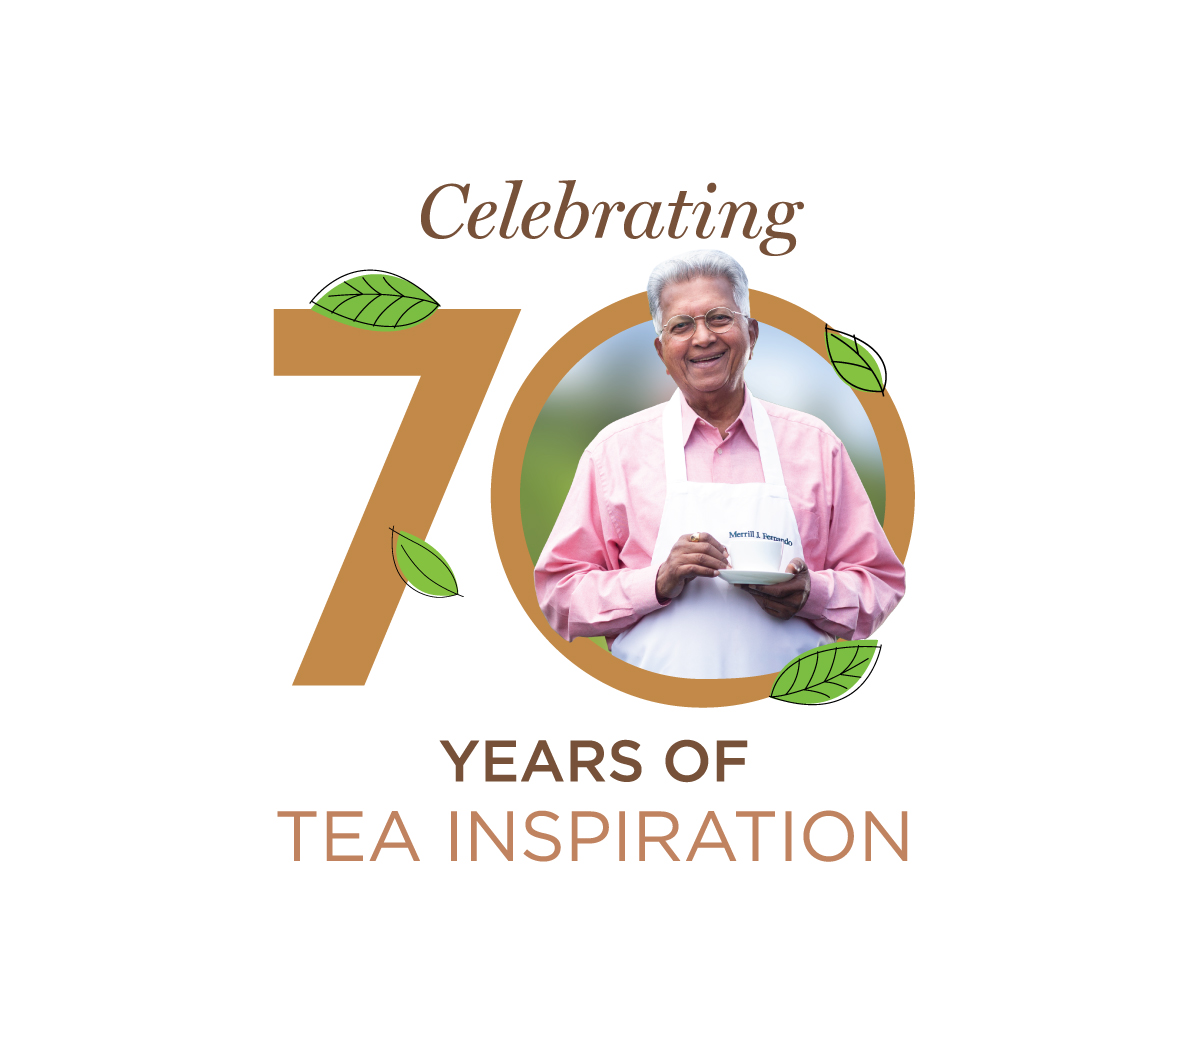 Celebrating 70 years in tea and the 90th birthday of Mr. Dilmah